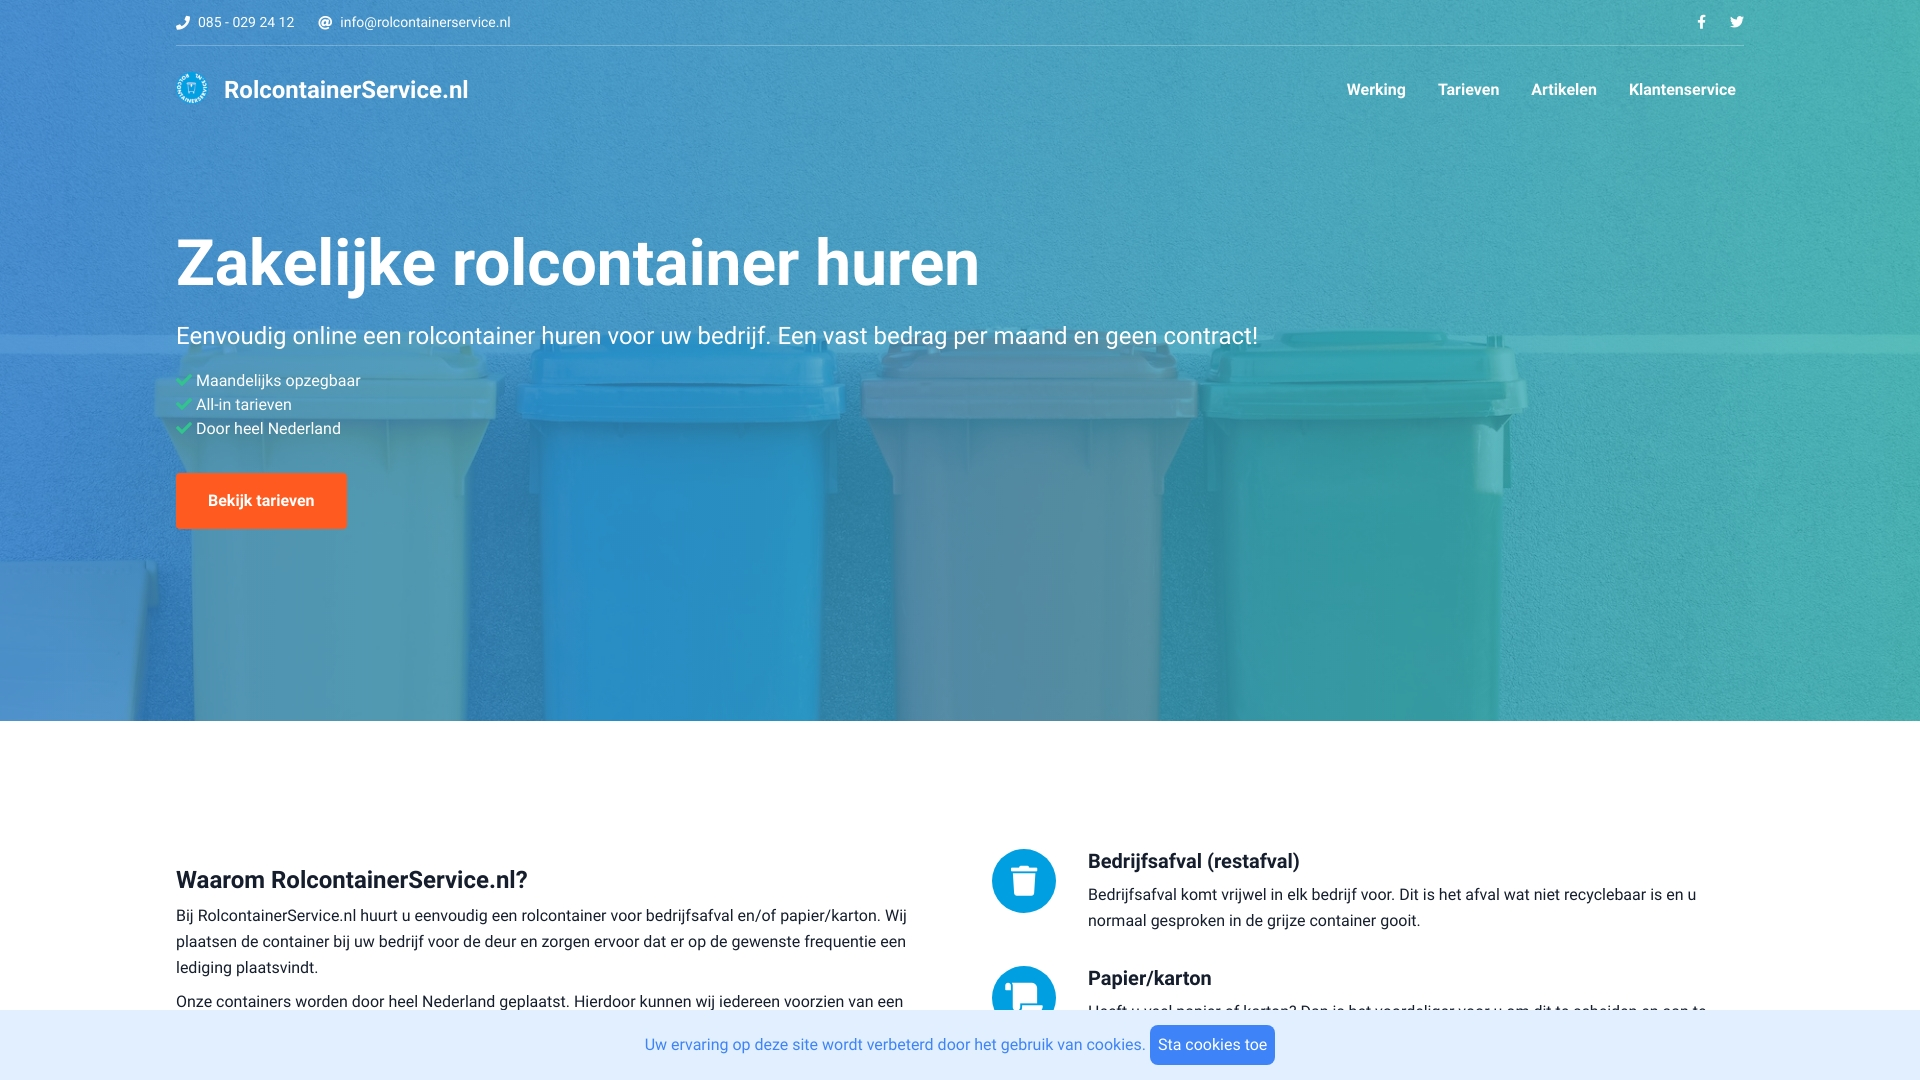 Rolcontainerservice.nl